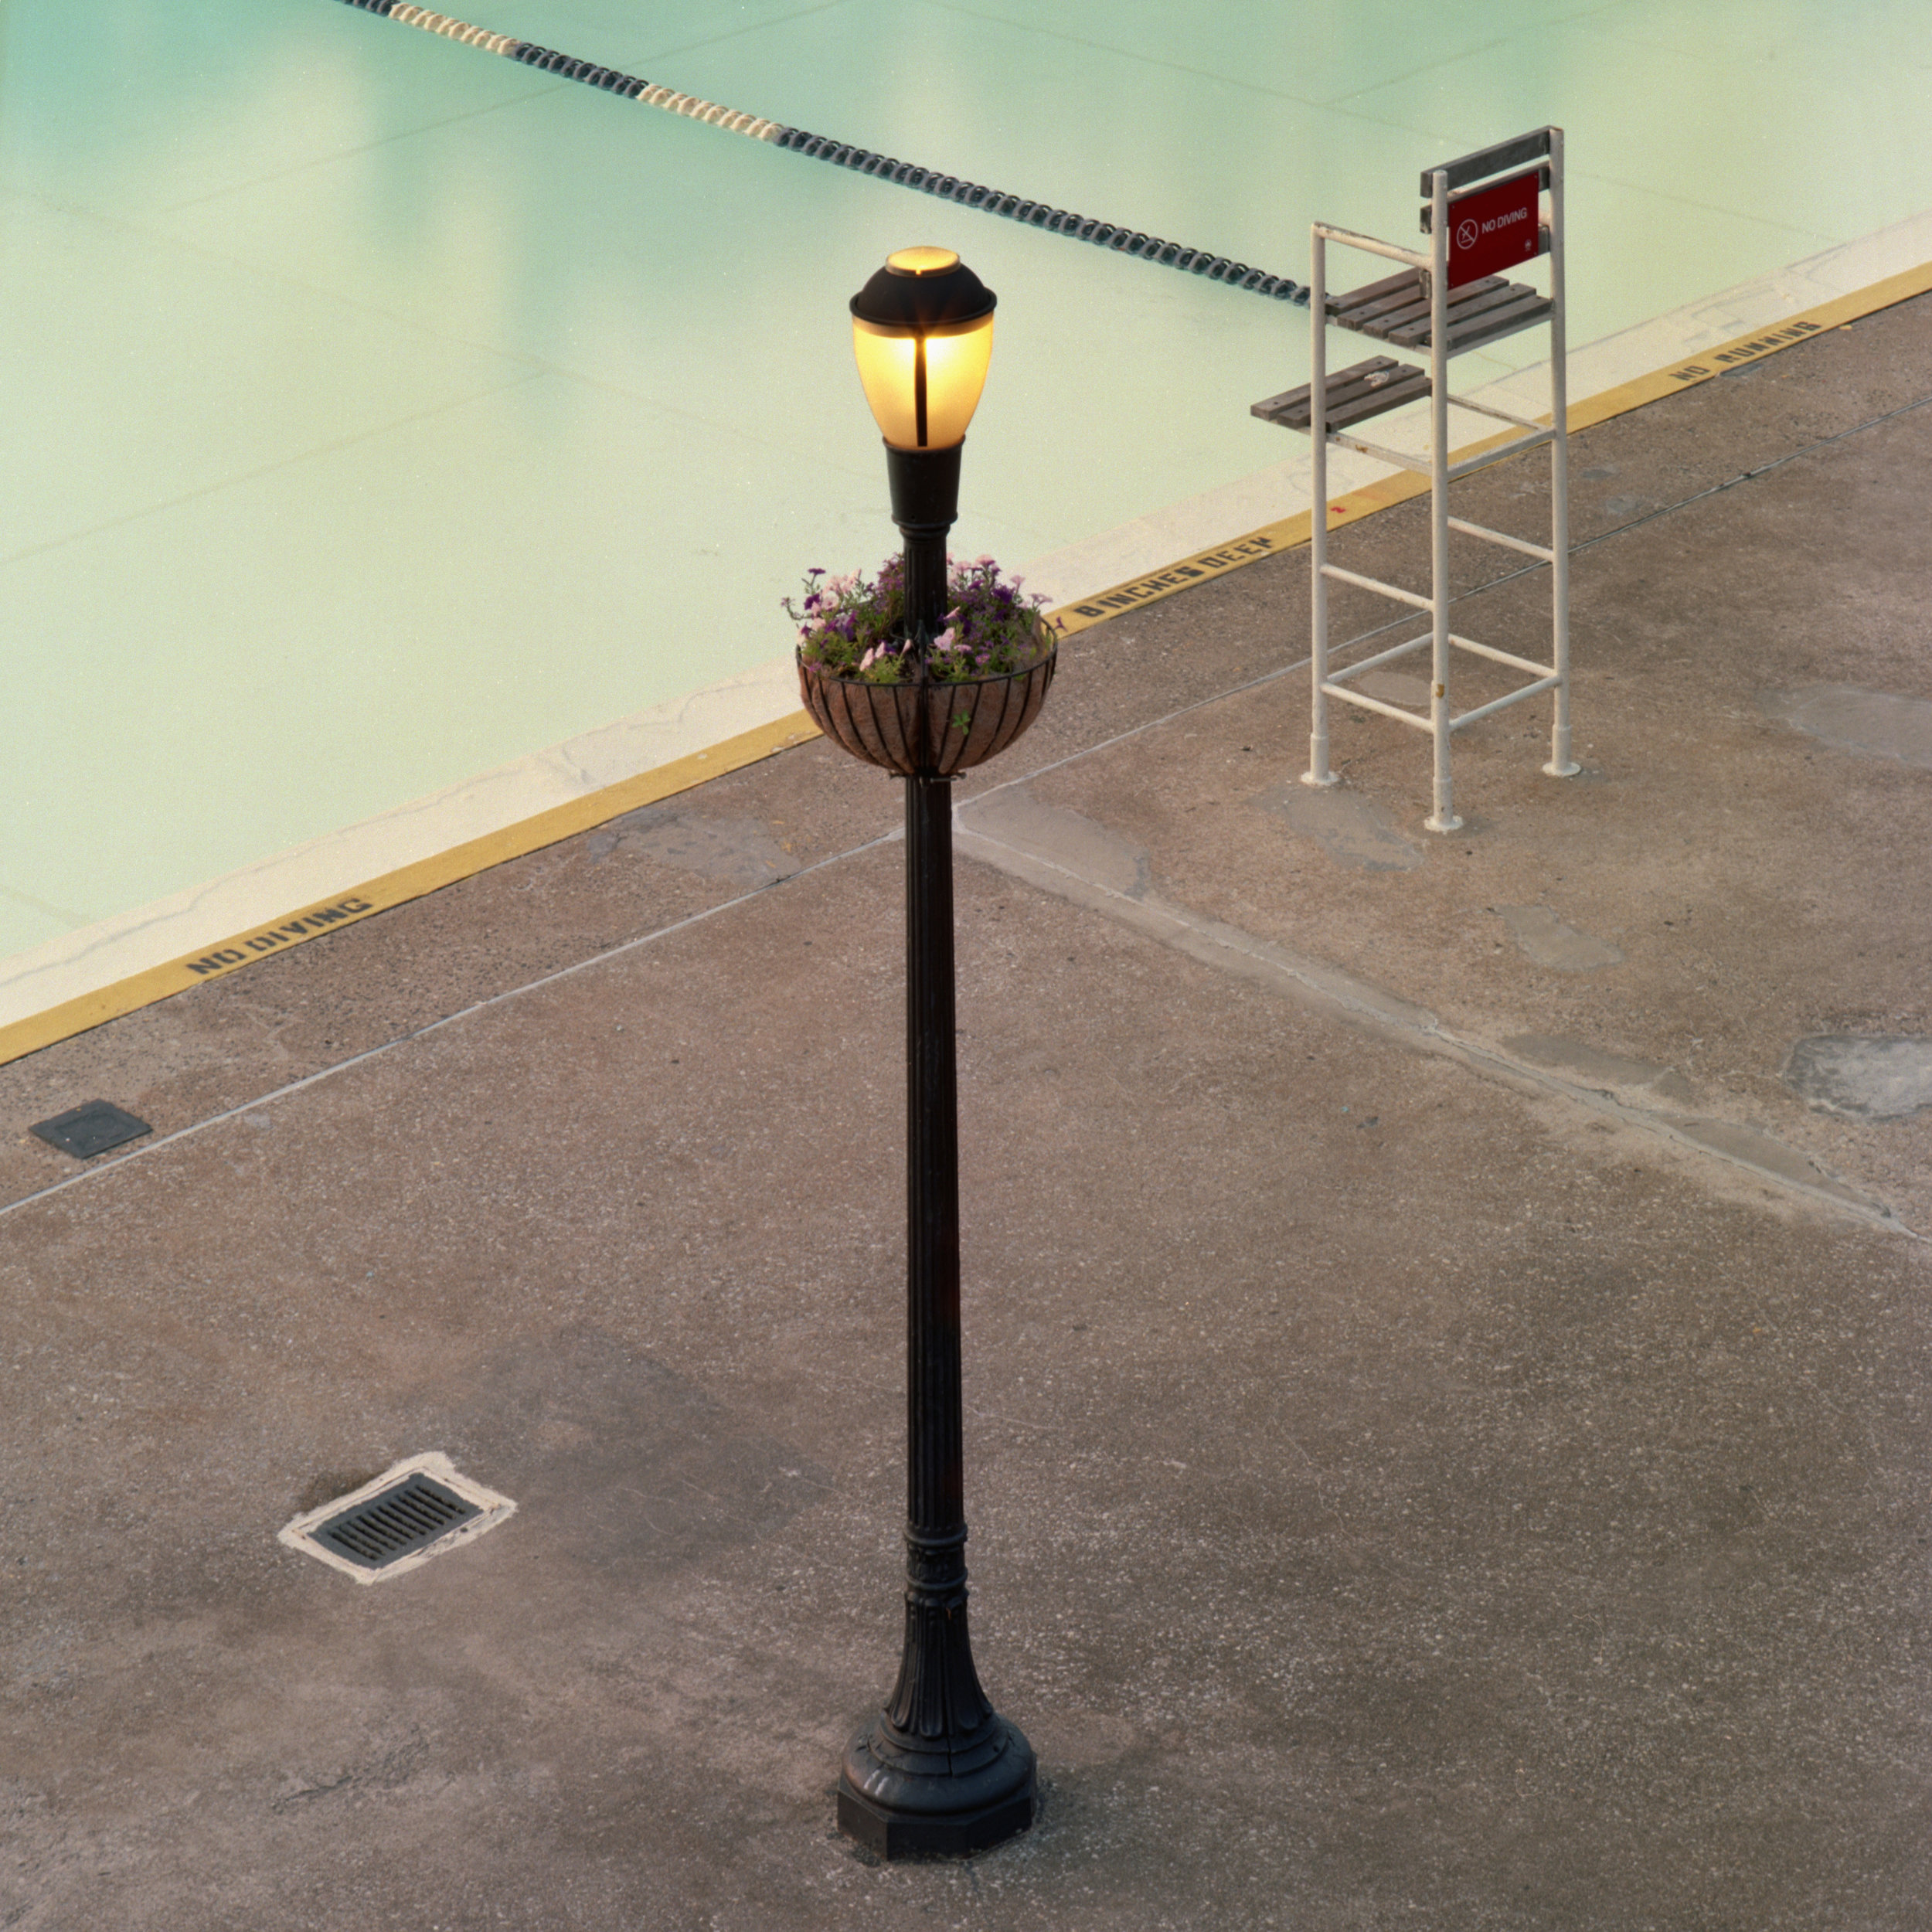 Astoria Park Pool, 2019